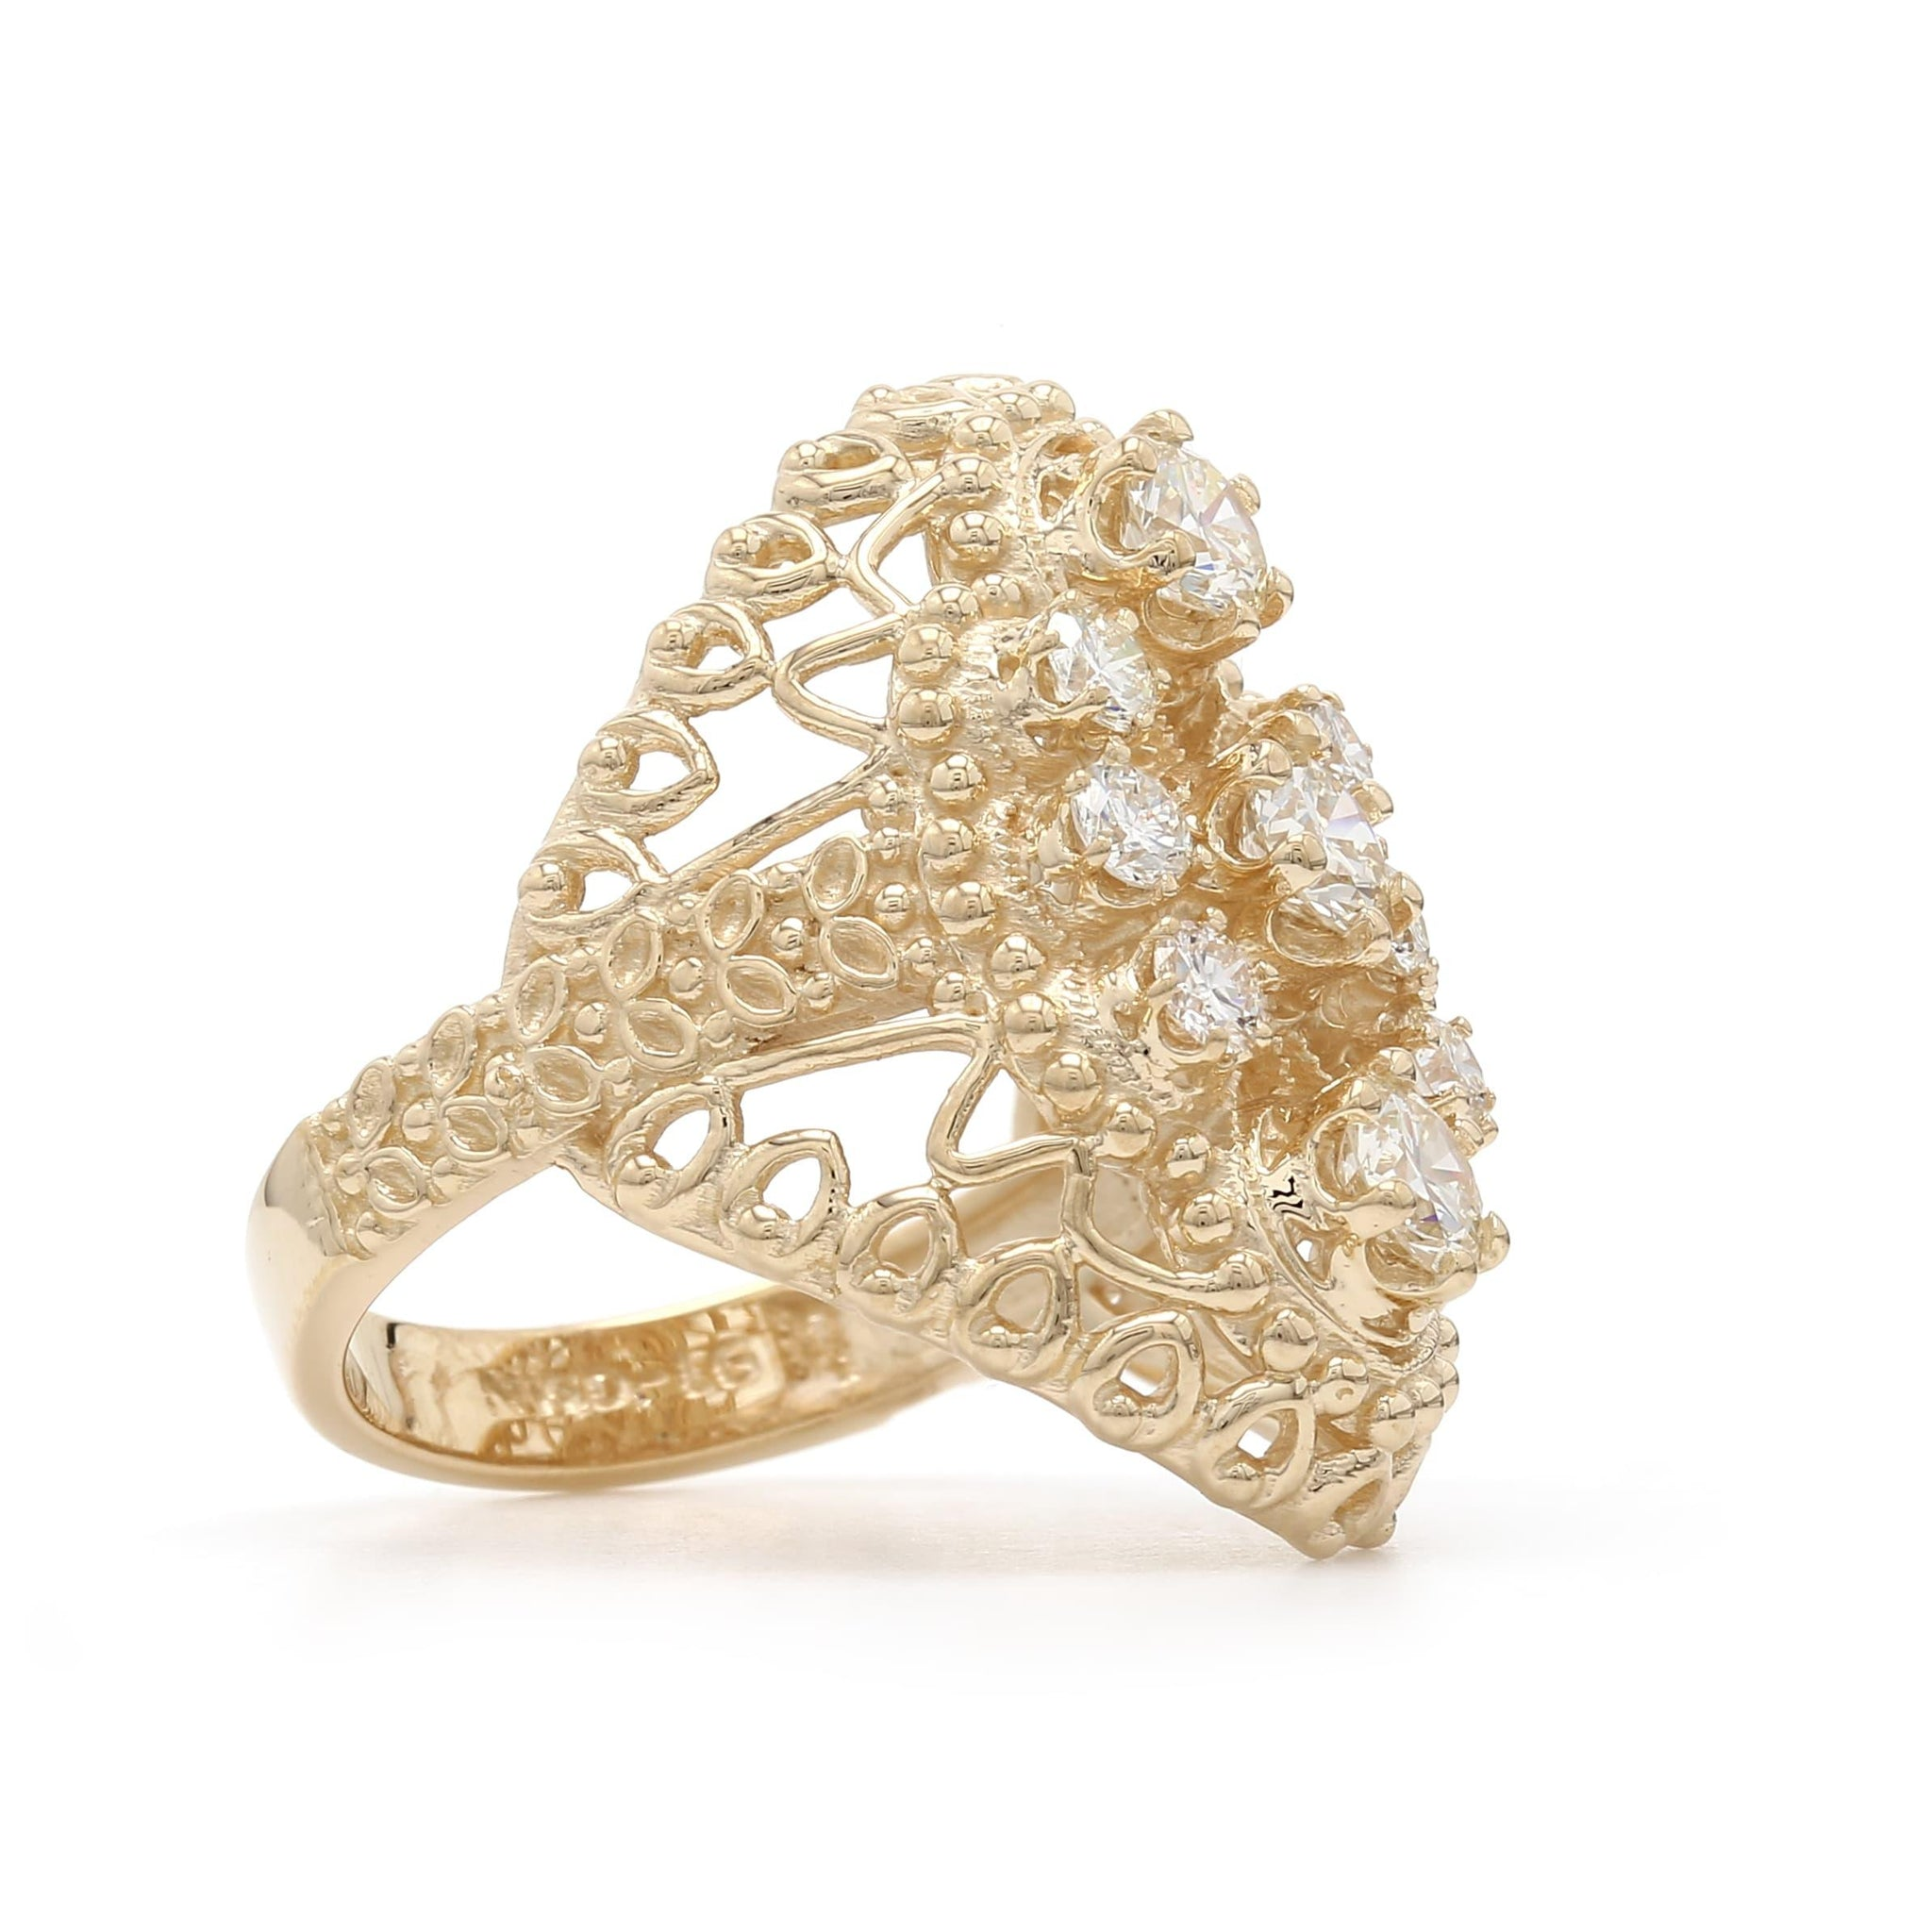 1.25 Ct. T.W. Lab-Grown Diamond Cluster Ring 14K Yellow Gold